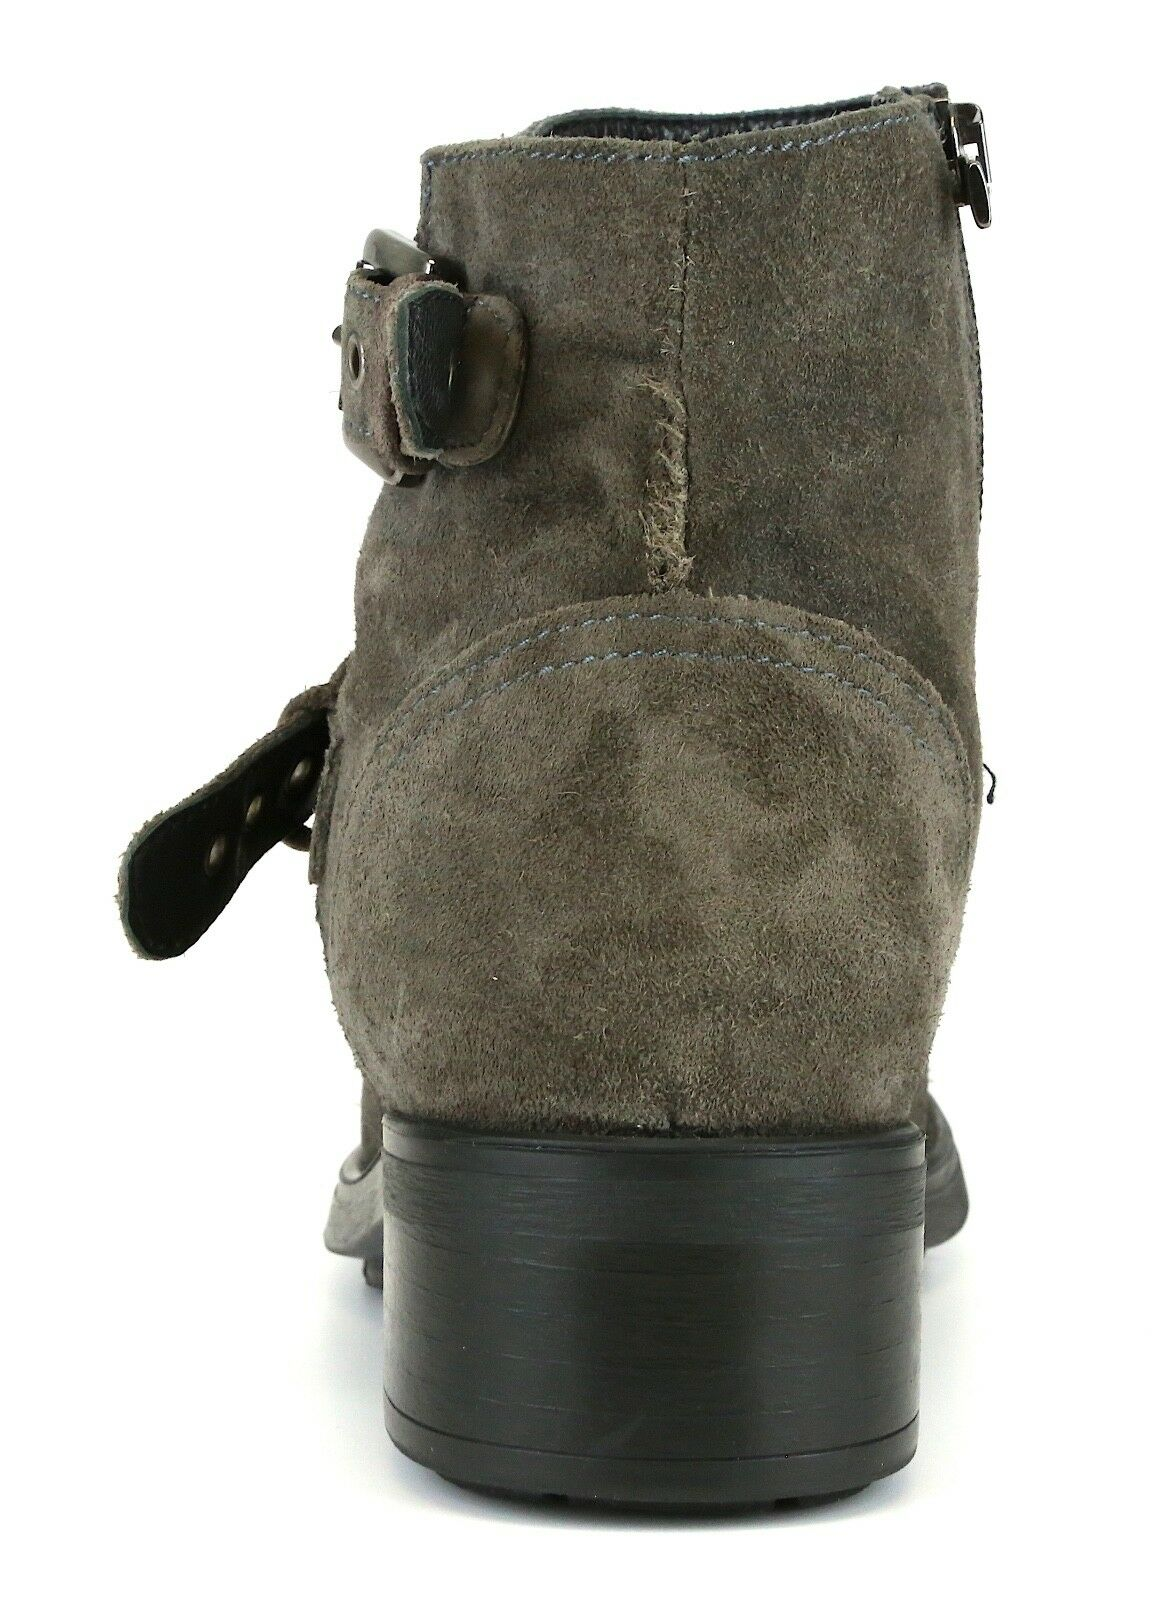 Aquatalia By Marvin Marvin Marvin K. Sterling Suede Double Buckle Stiefel braun damen 7.5 5038  3afbd7